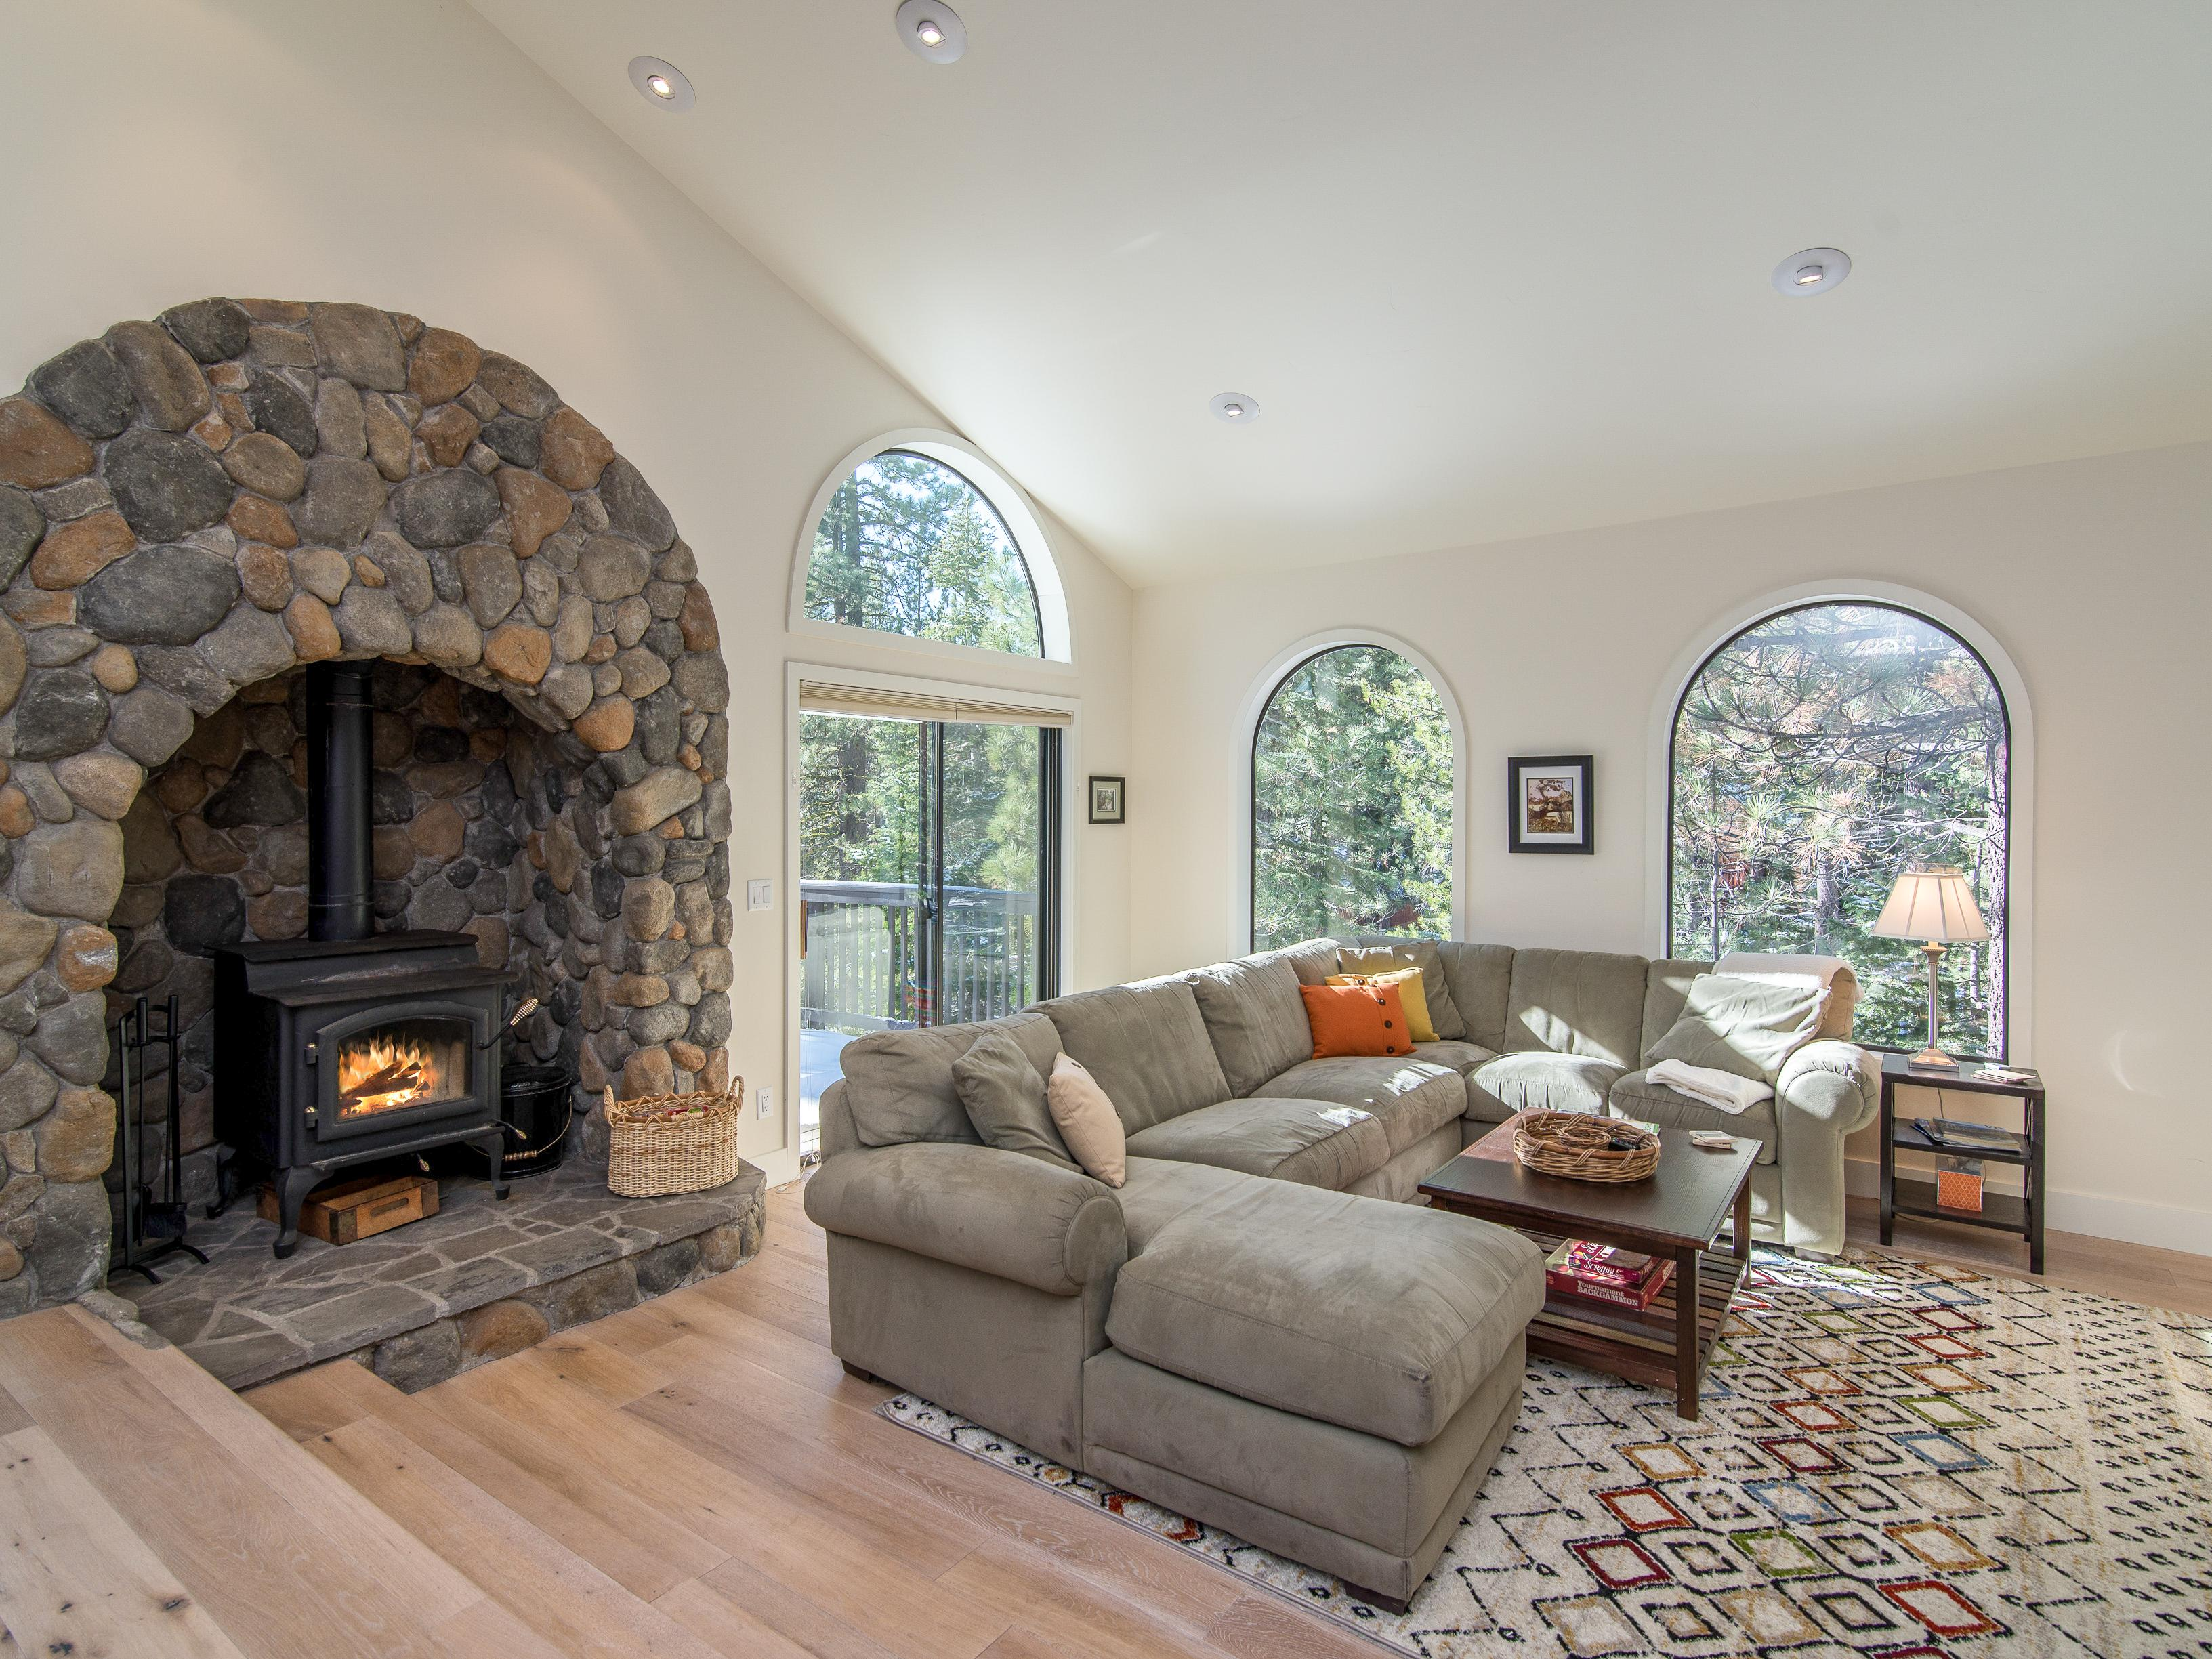 Welcome to Truckee! Your rental is professionally managed by TurnKey Vacation Rentals.Inviting living room with wood burning stove and cozy sectional couch.